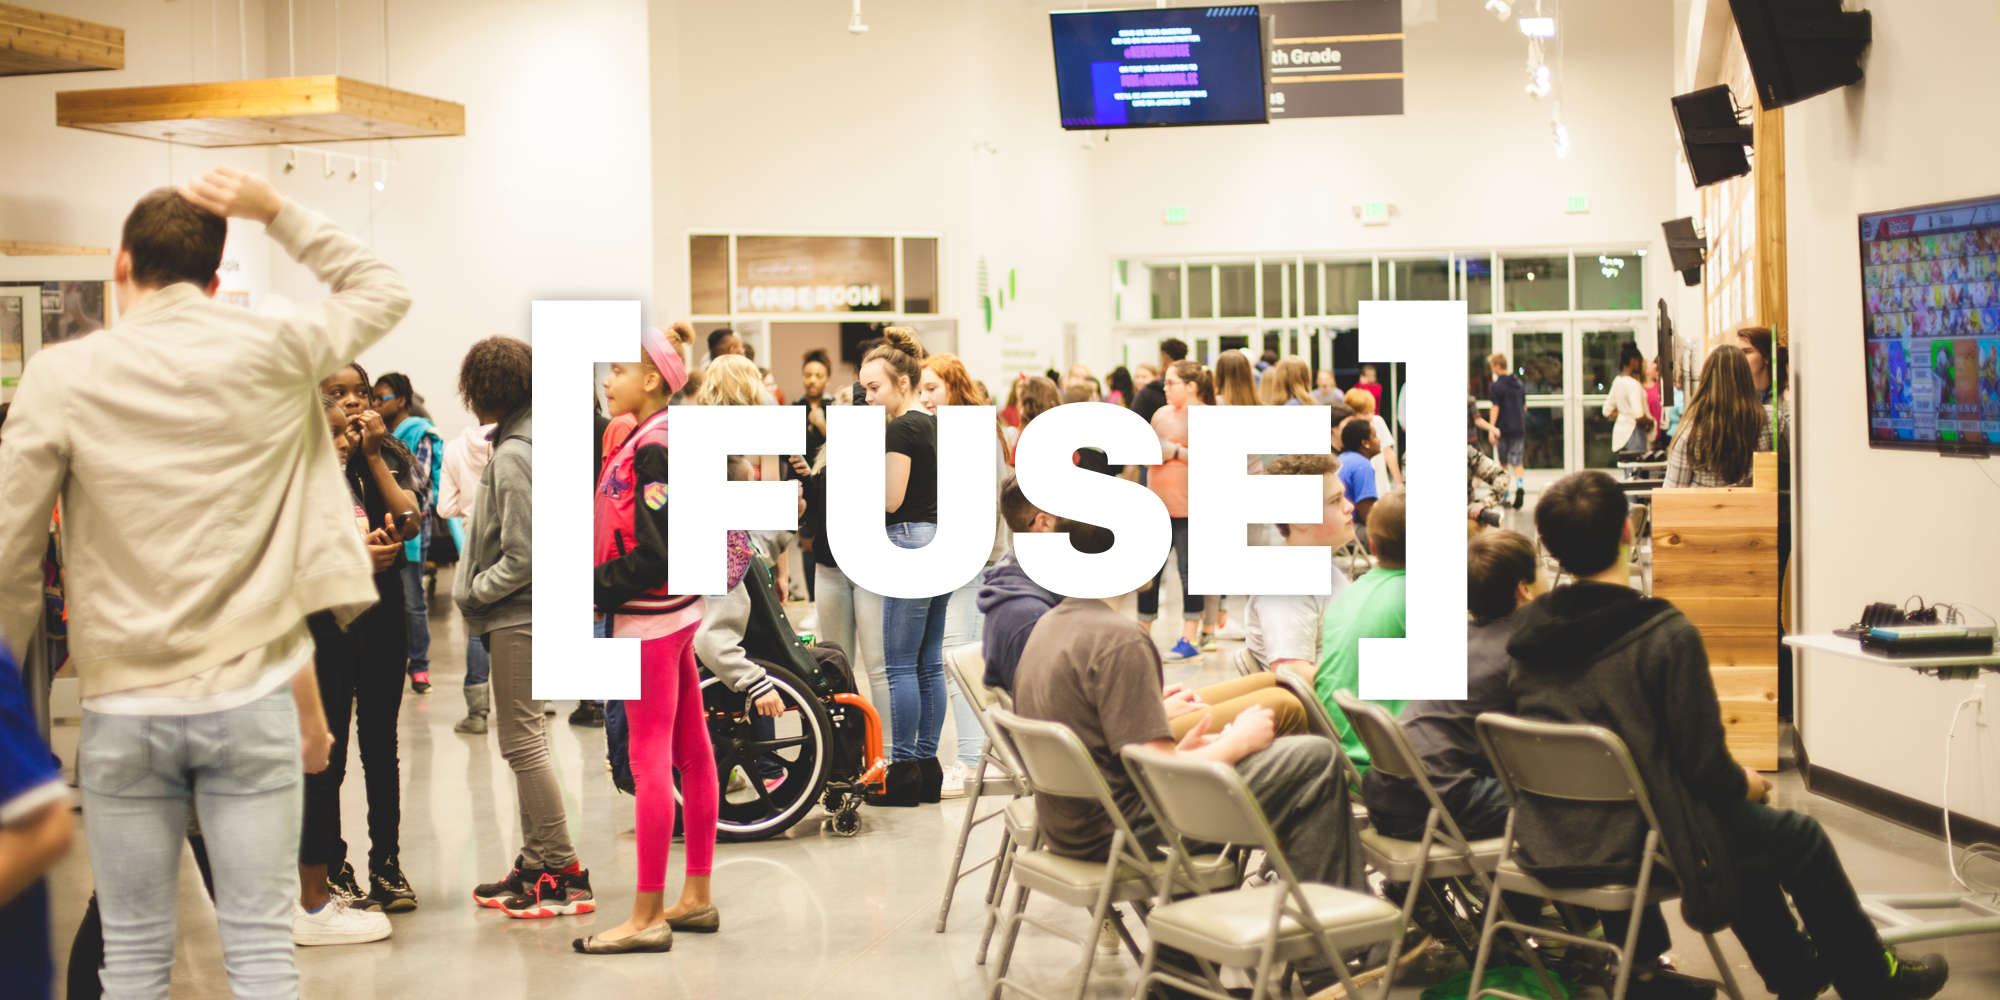 fuse two pdf in one